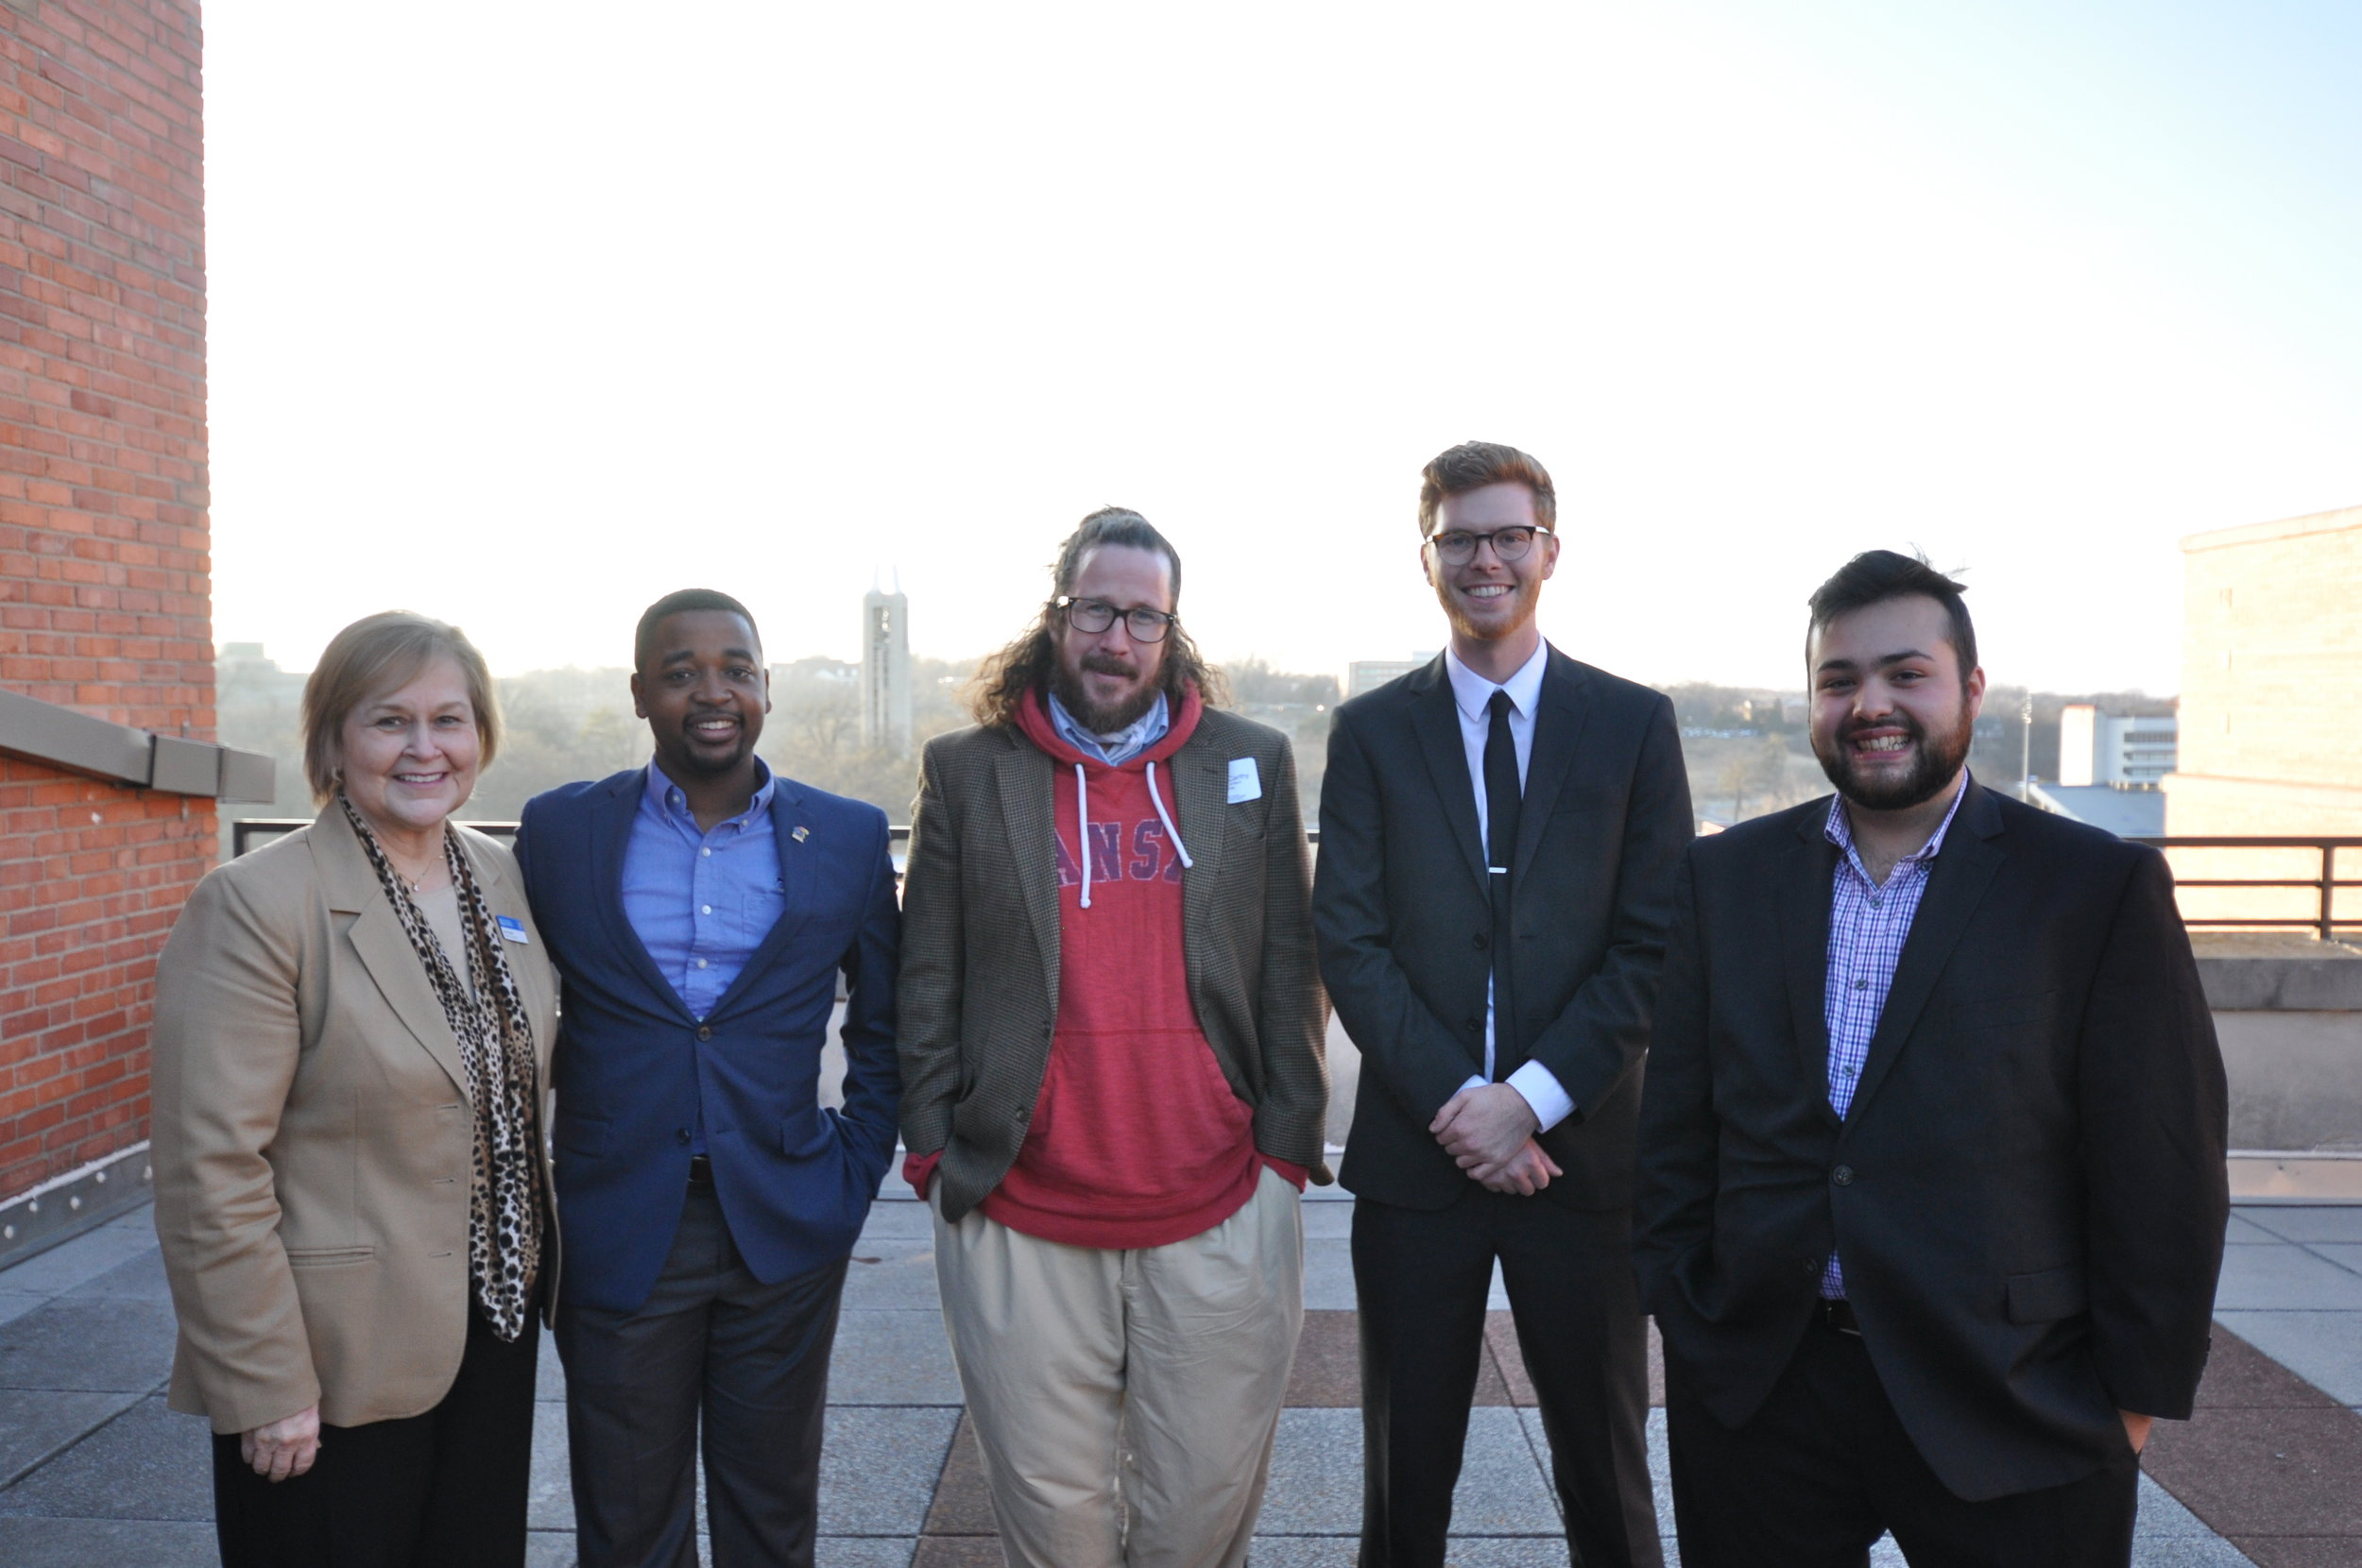 Dean Ann Brill with (from left) Joshua Robinson, Dan McCarthy, Sam Eastes and Juan Pablo Marroquin.